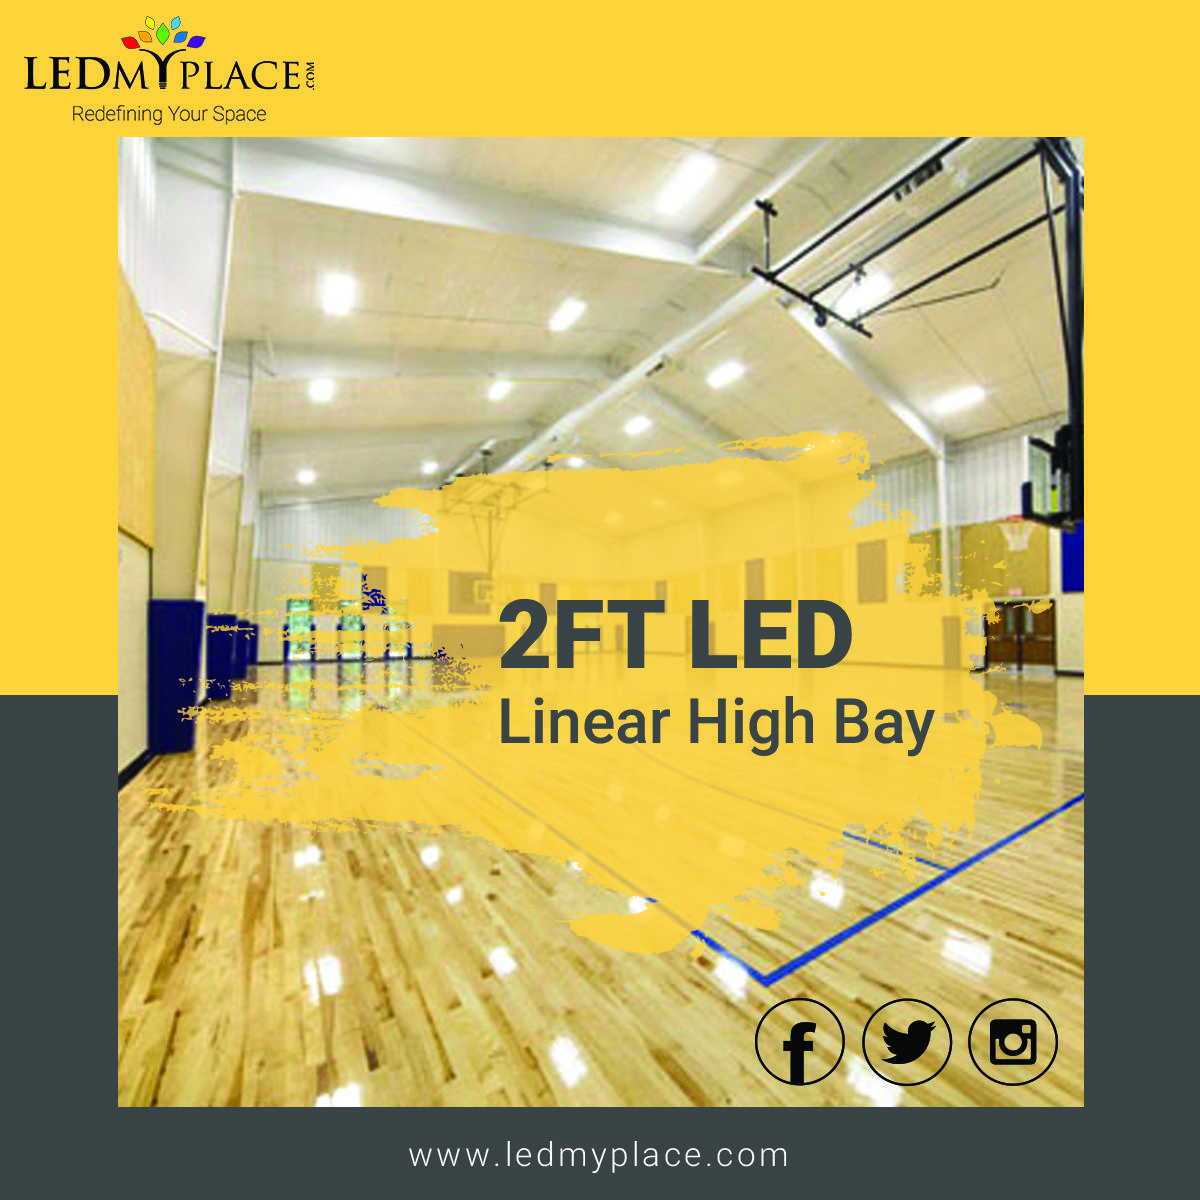 2ft Led Linear High Bay 165w 4000k Led High Bay Lighting High Bay Lights